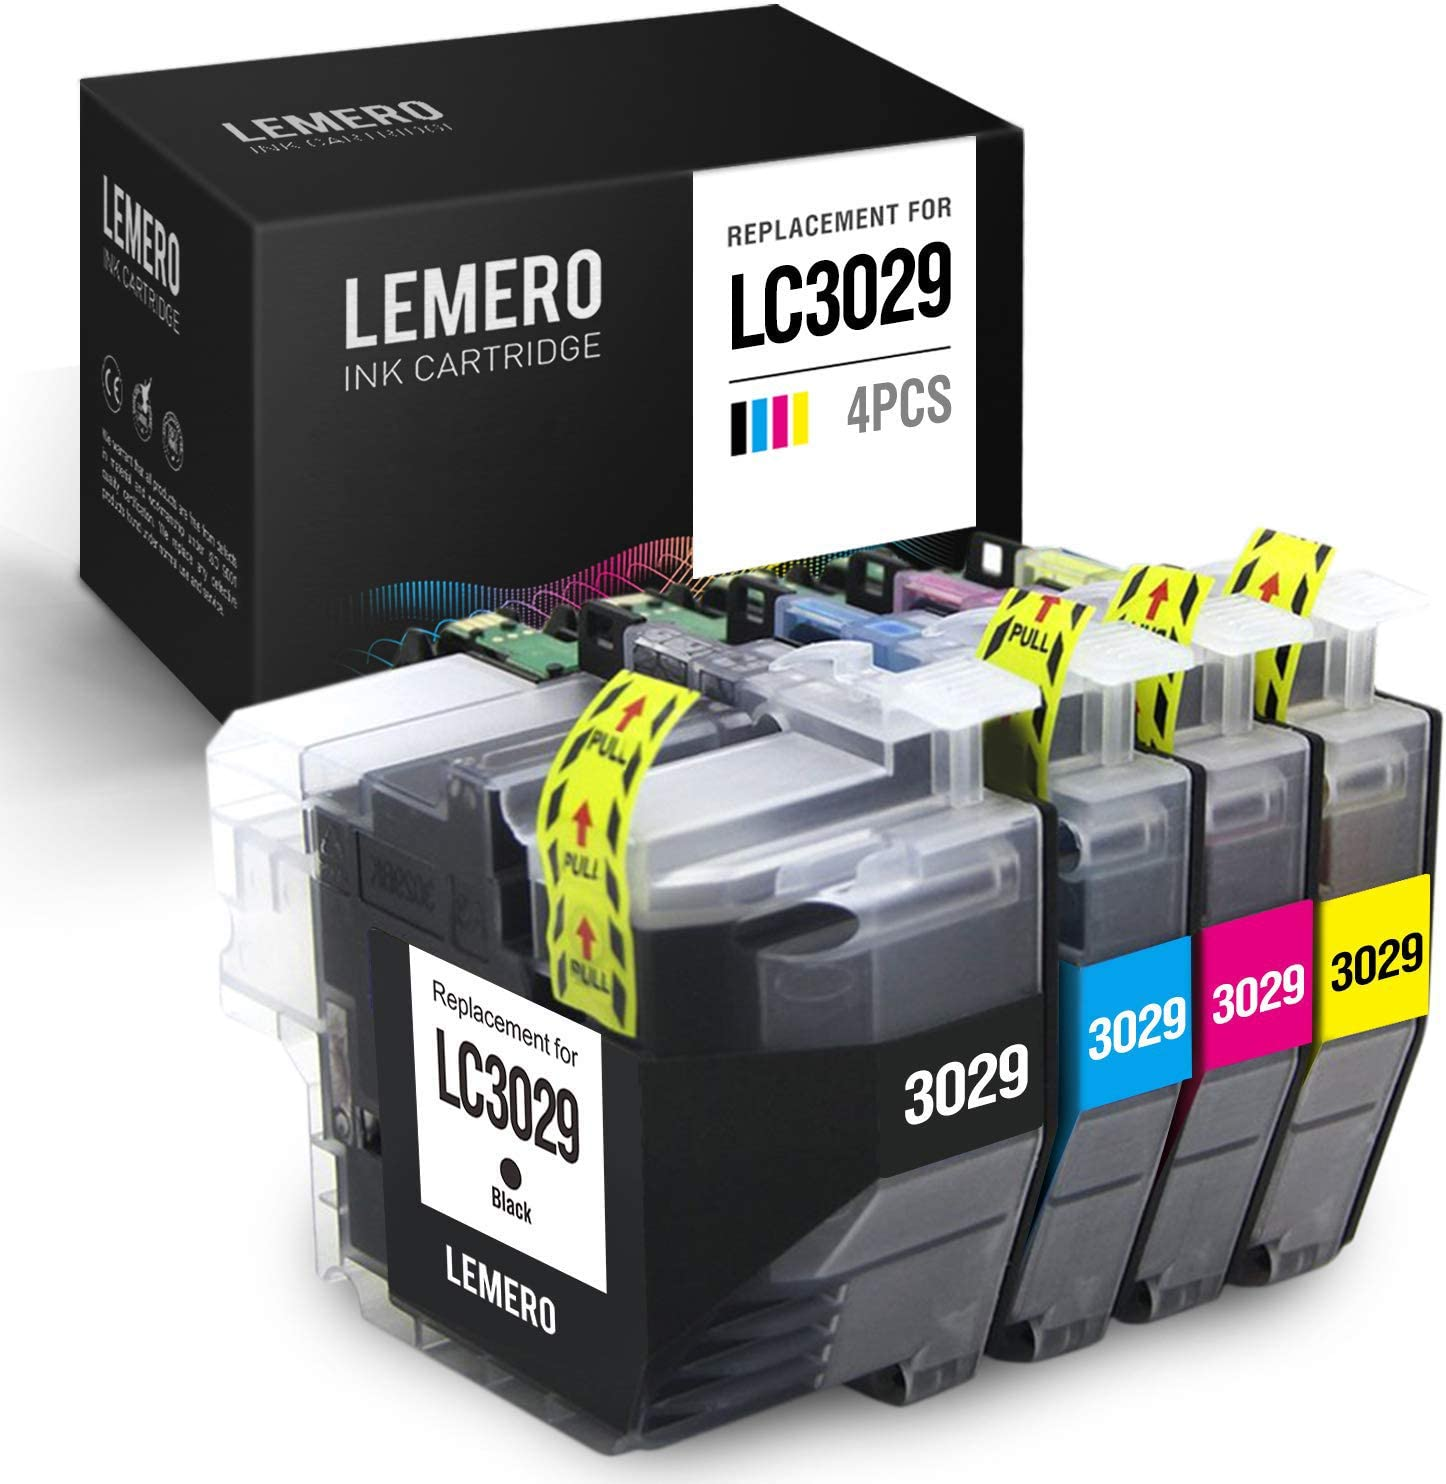 AM-Ink Compatible Ink Cartridge Replacement for Brother LC3029 XXL LC 3029 for MFC-J6935DW MFC-J5830DW MFC-J6535DW MFC-J5930DW MFC-J5830DWXL MFC-J6535DWXL 5 Pack